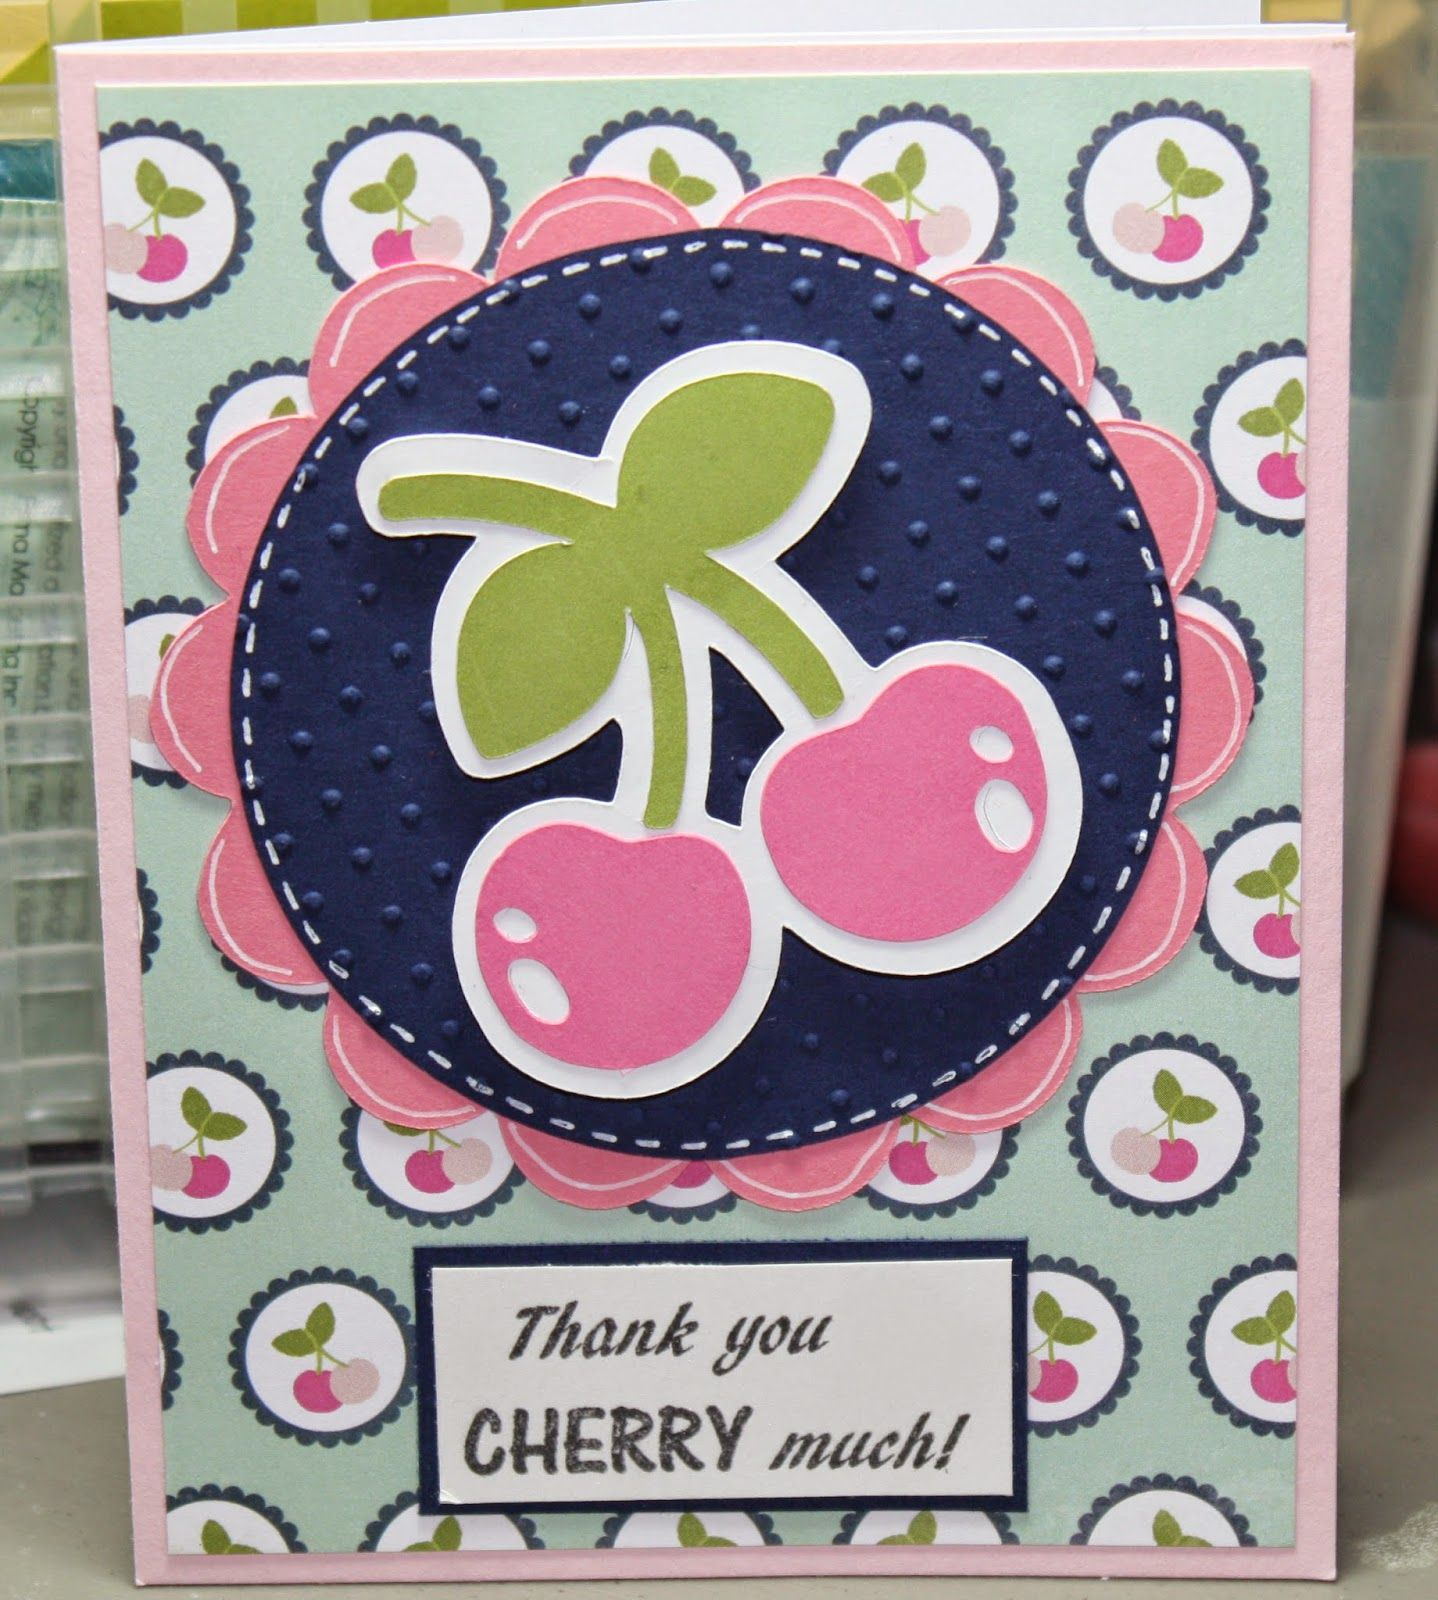 Cherries from hello kitty greetings cricut cartridge hello kitty cherries from hello kitty greetings cricut cartridgeshello m4hsunfo